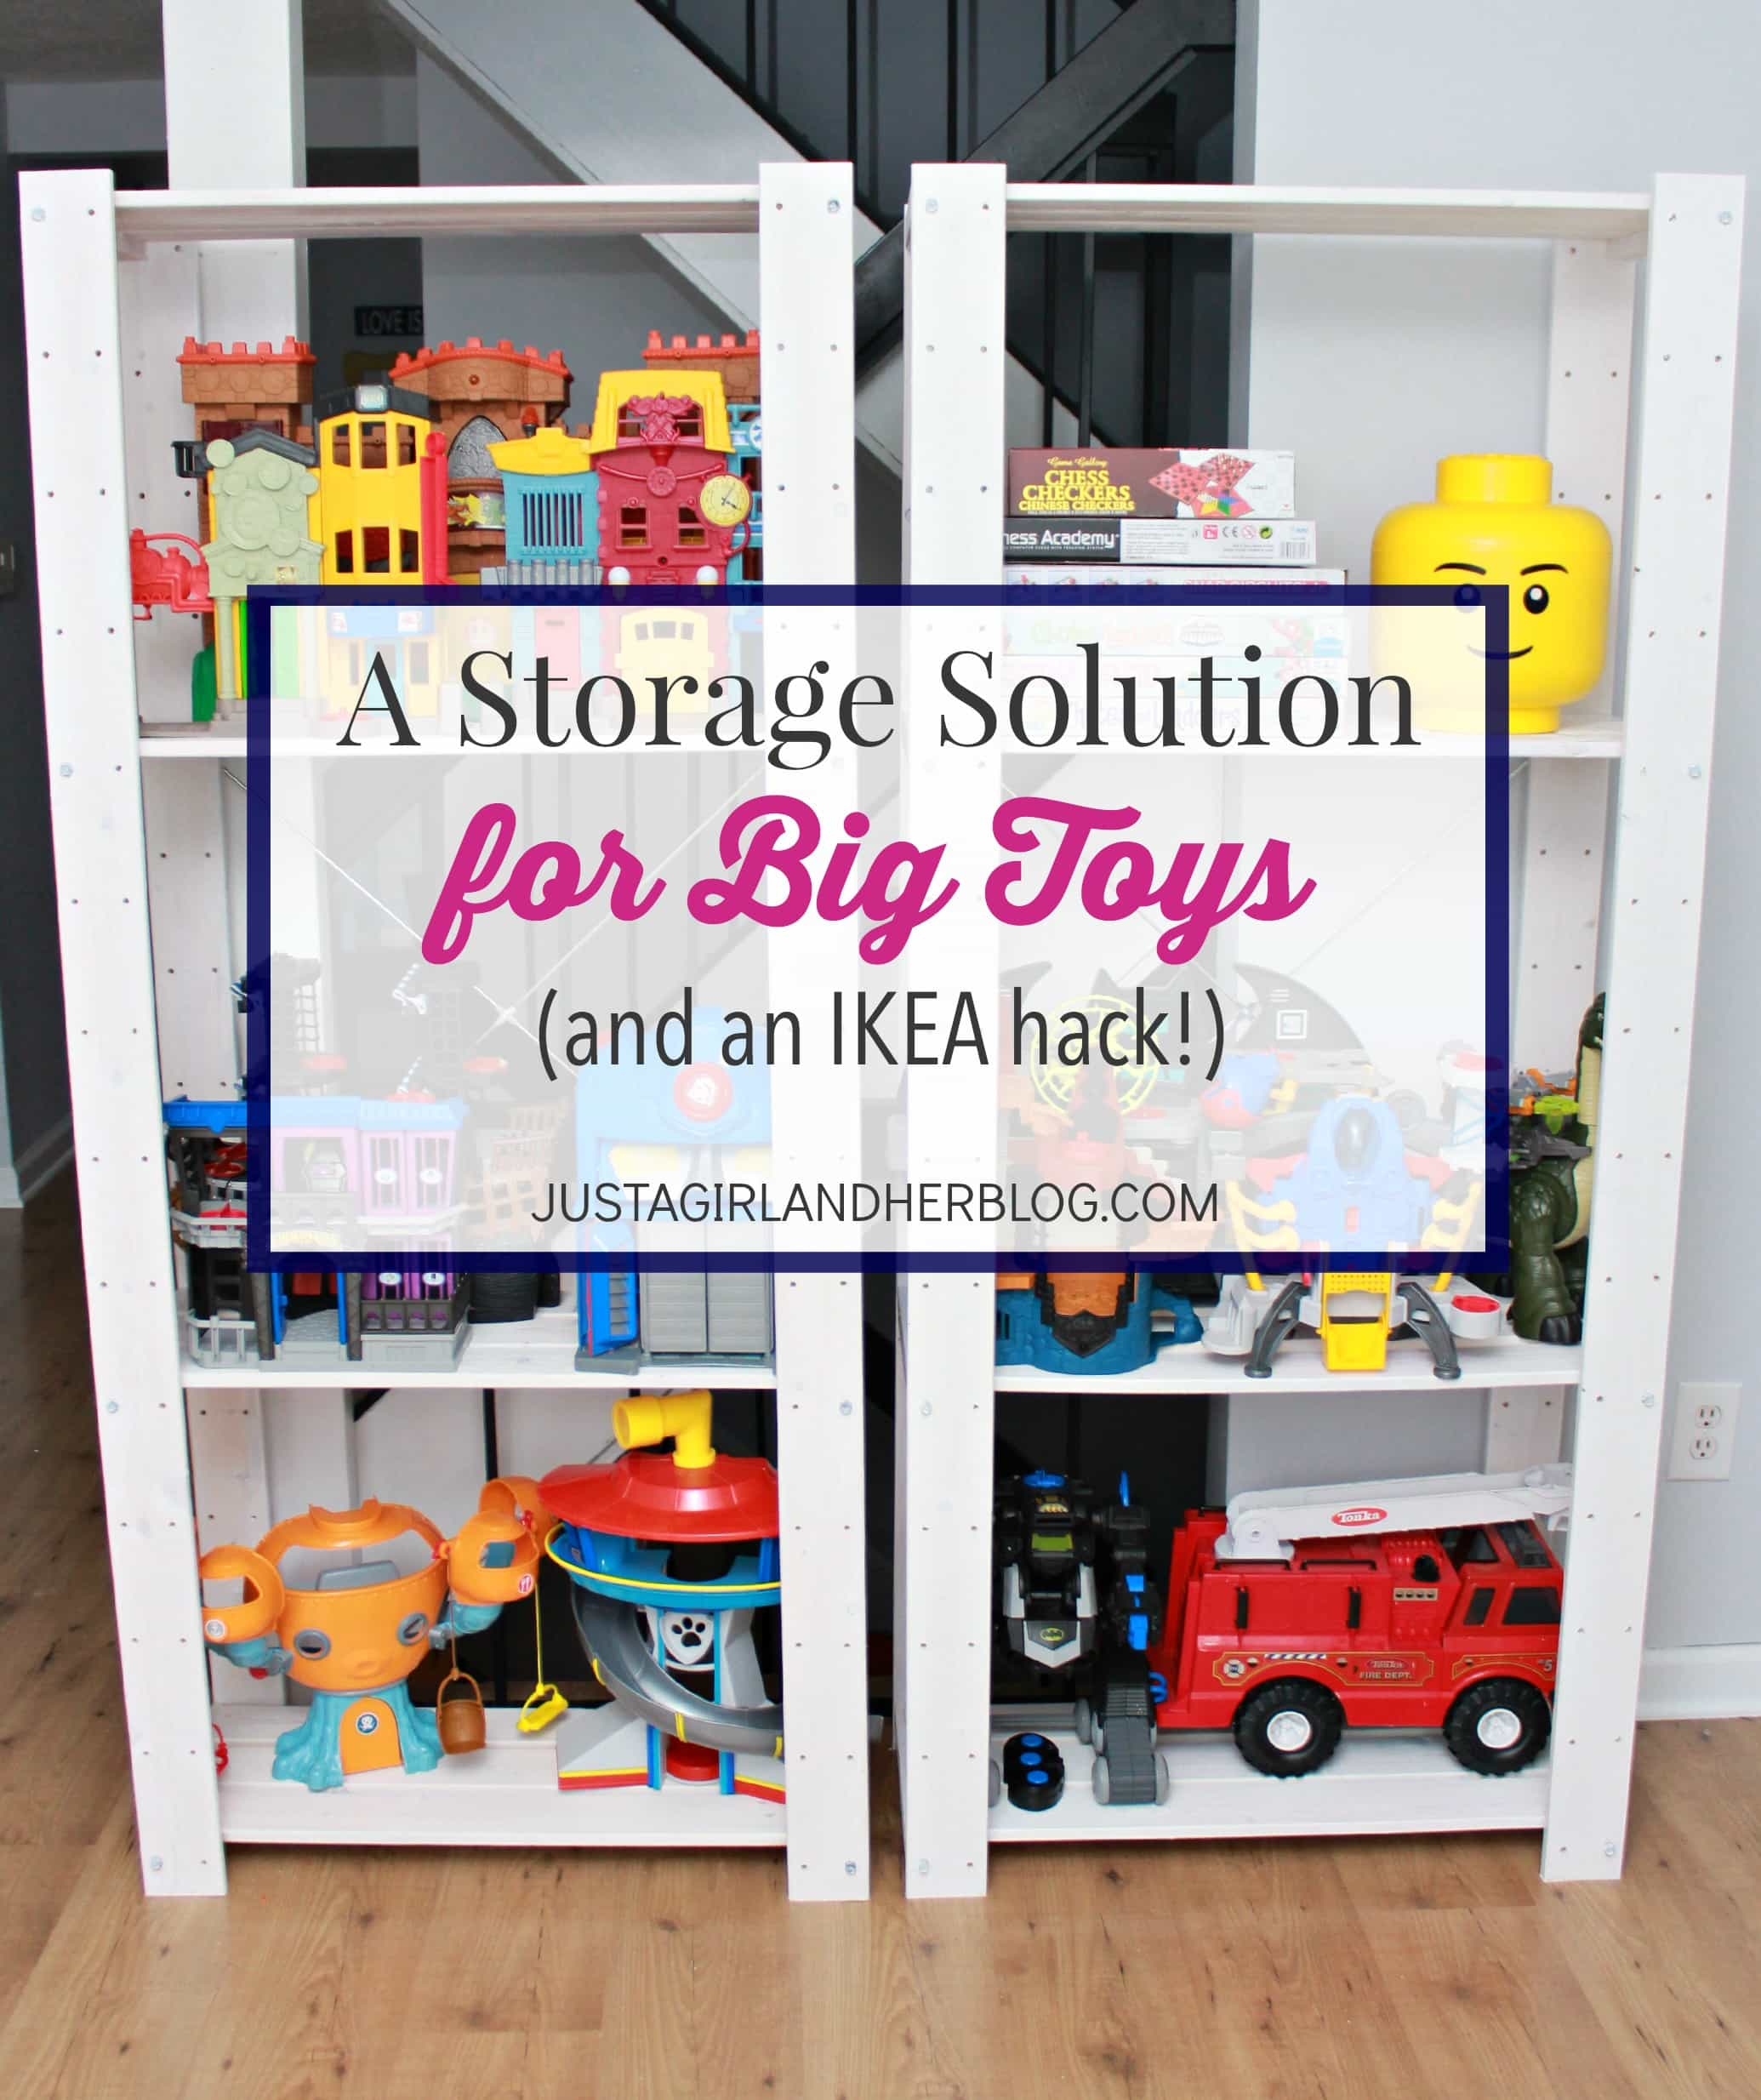 Boys Bedroom Ideas For Small Spaces A Storage Solution For Big Toys And An Ikea Hack Just